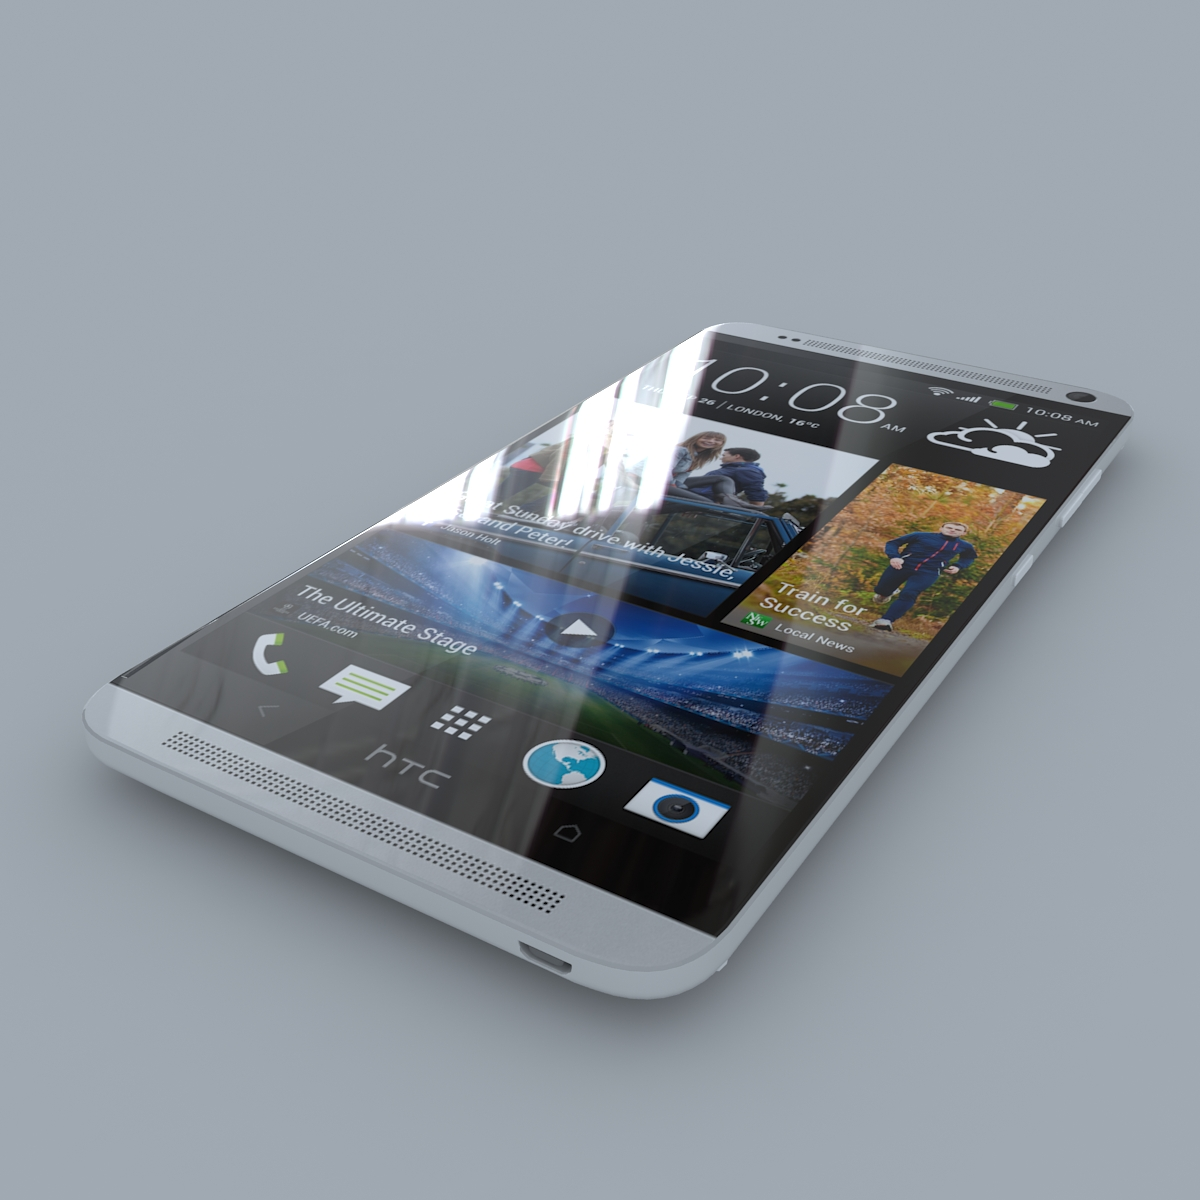 HTC One Max 3D Model – Buy HTC One Max 3D Model